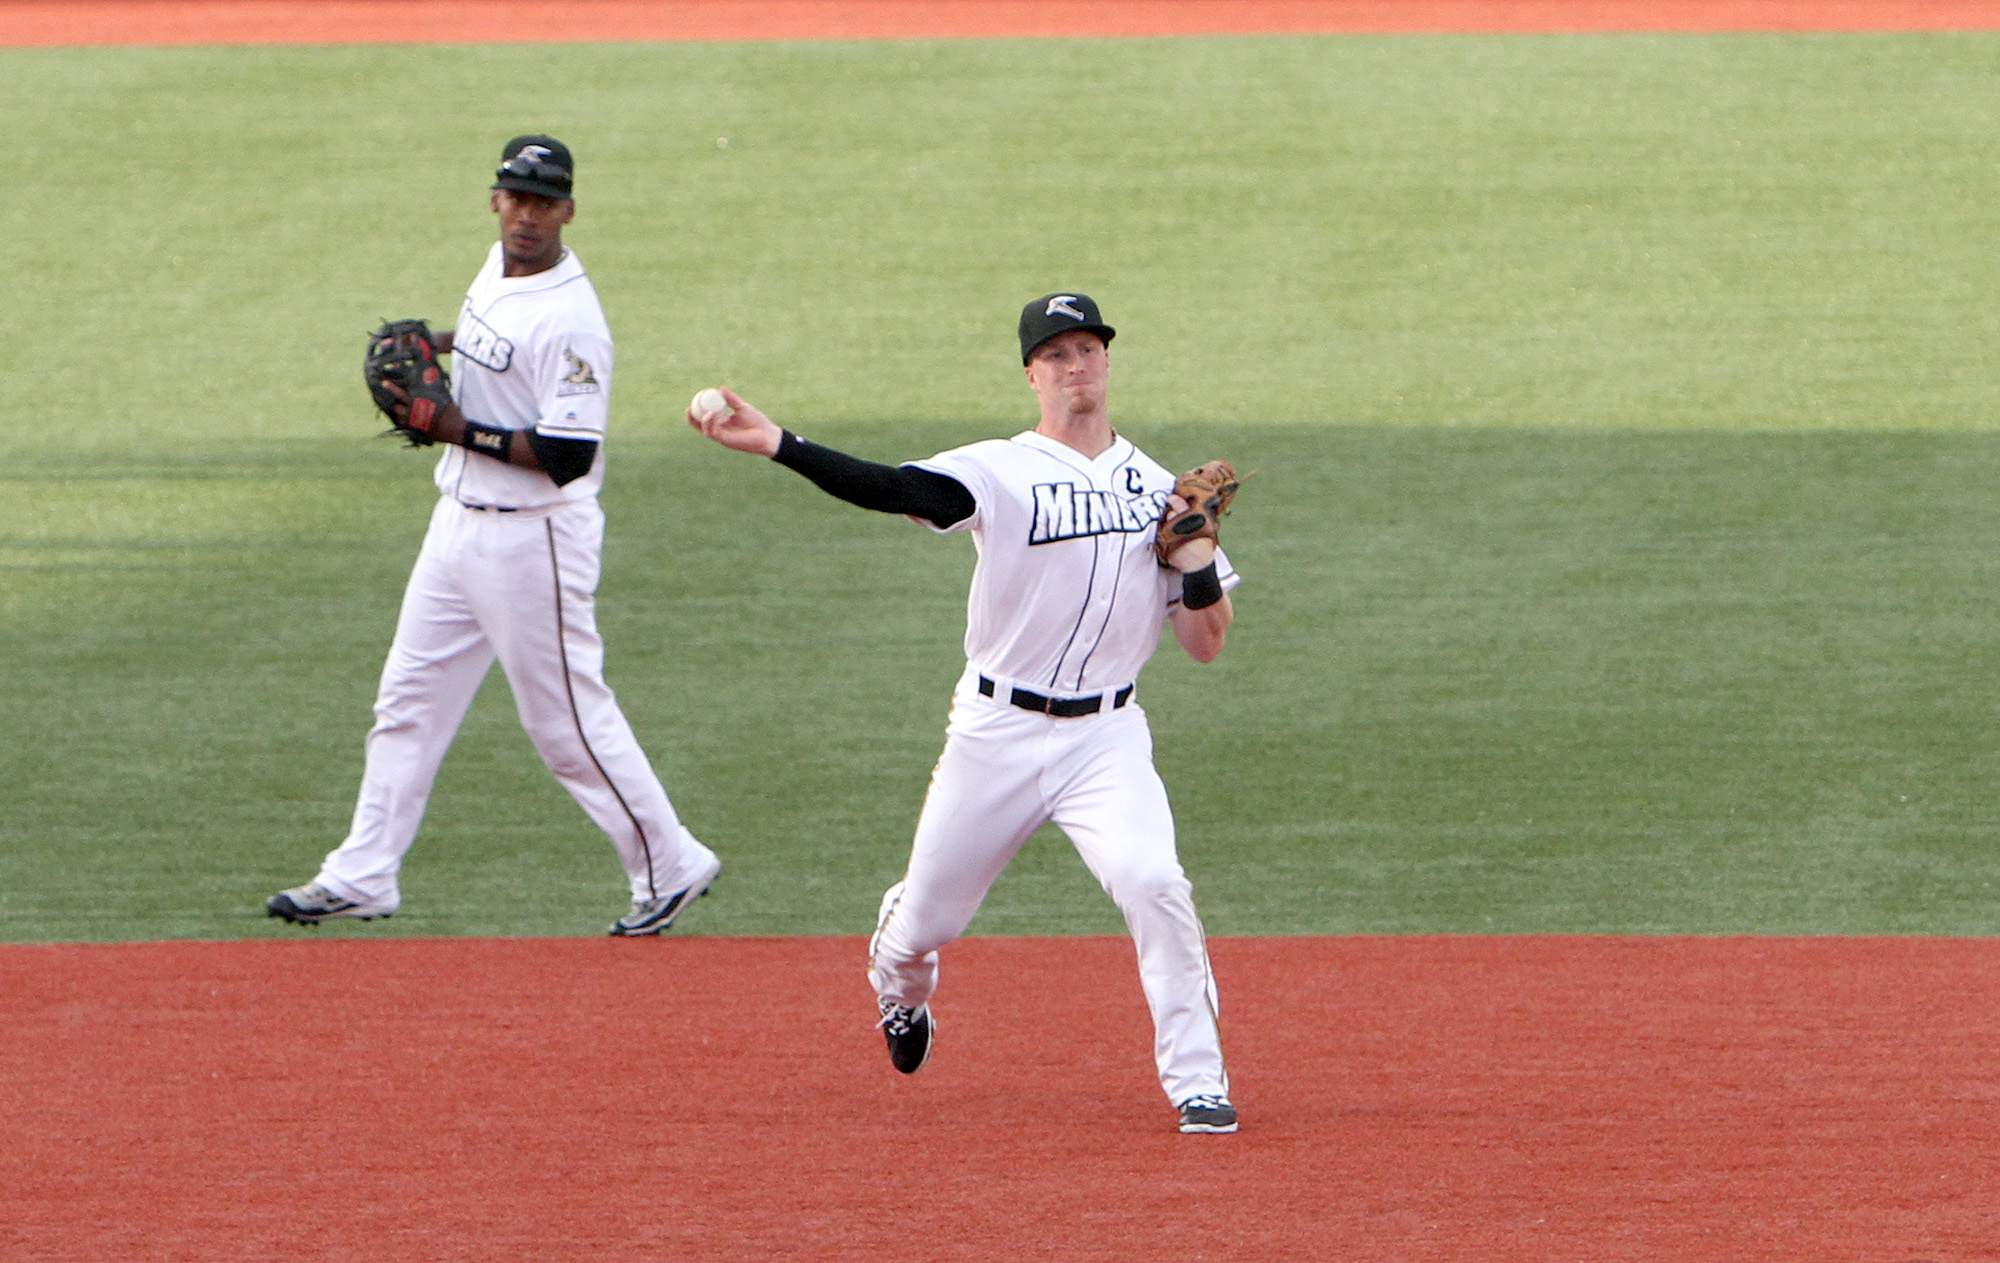 Steve Marino was a fixture at third base for the Miners from 2014-2016.